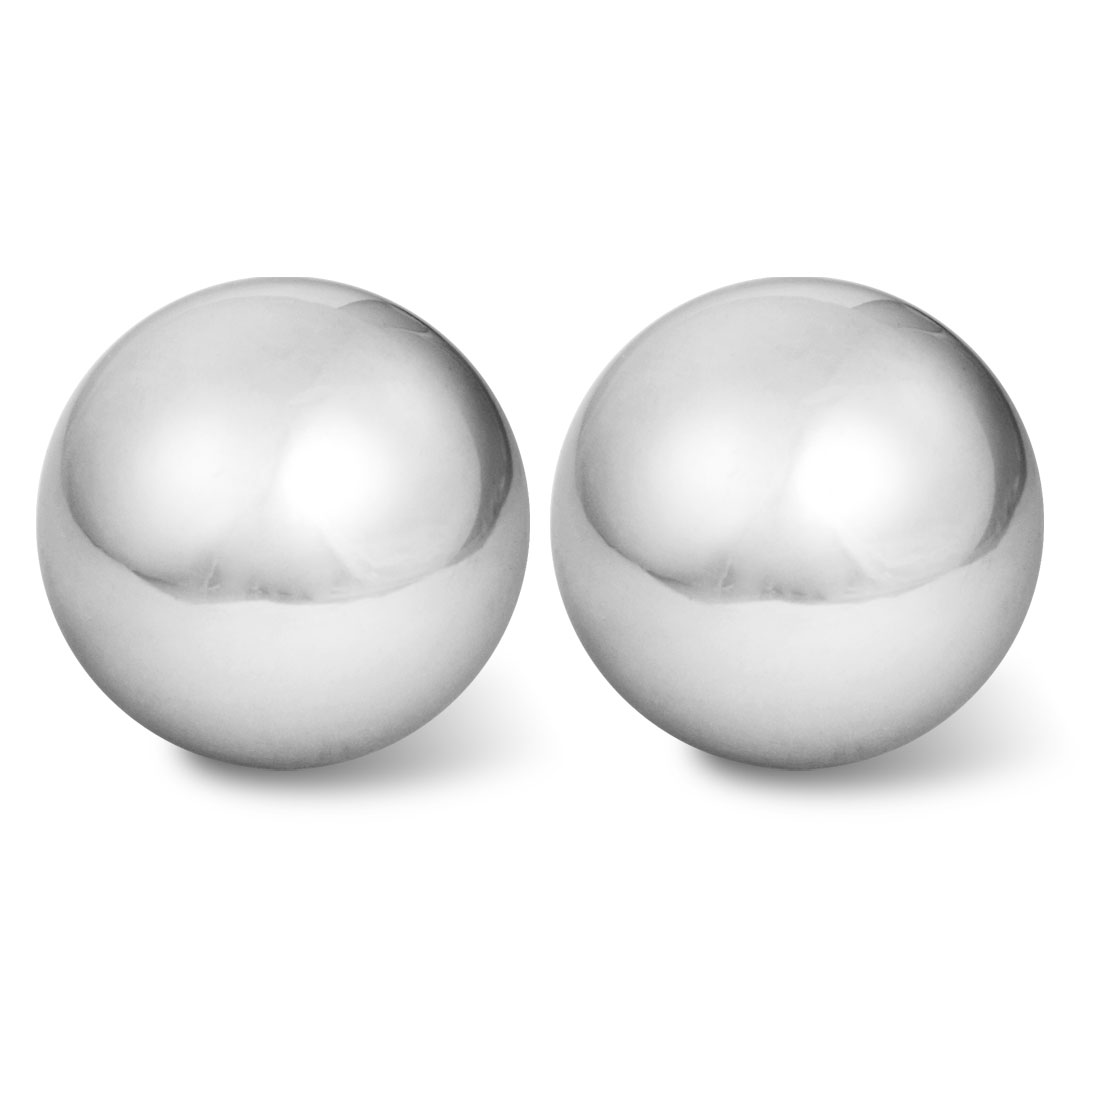 "2 Pcs Silver Tone Hand Palm Exercise 2"" Dia Chime Massage Ball"